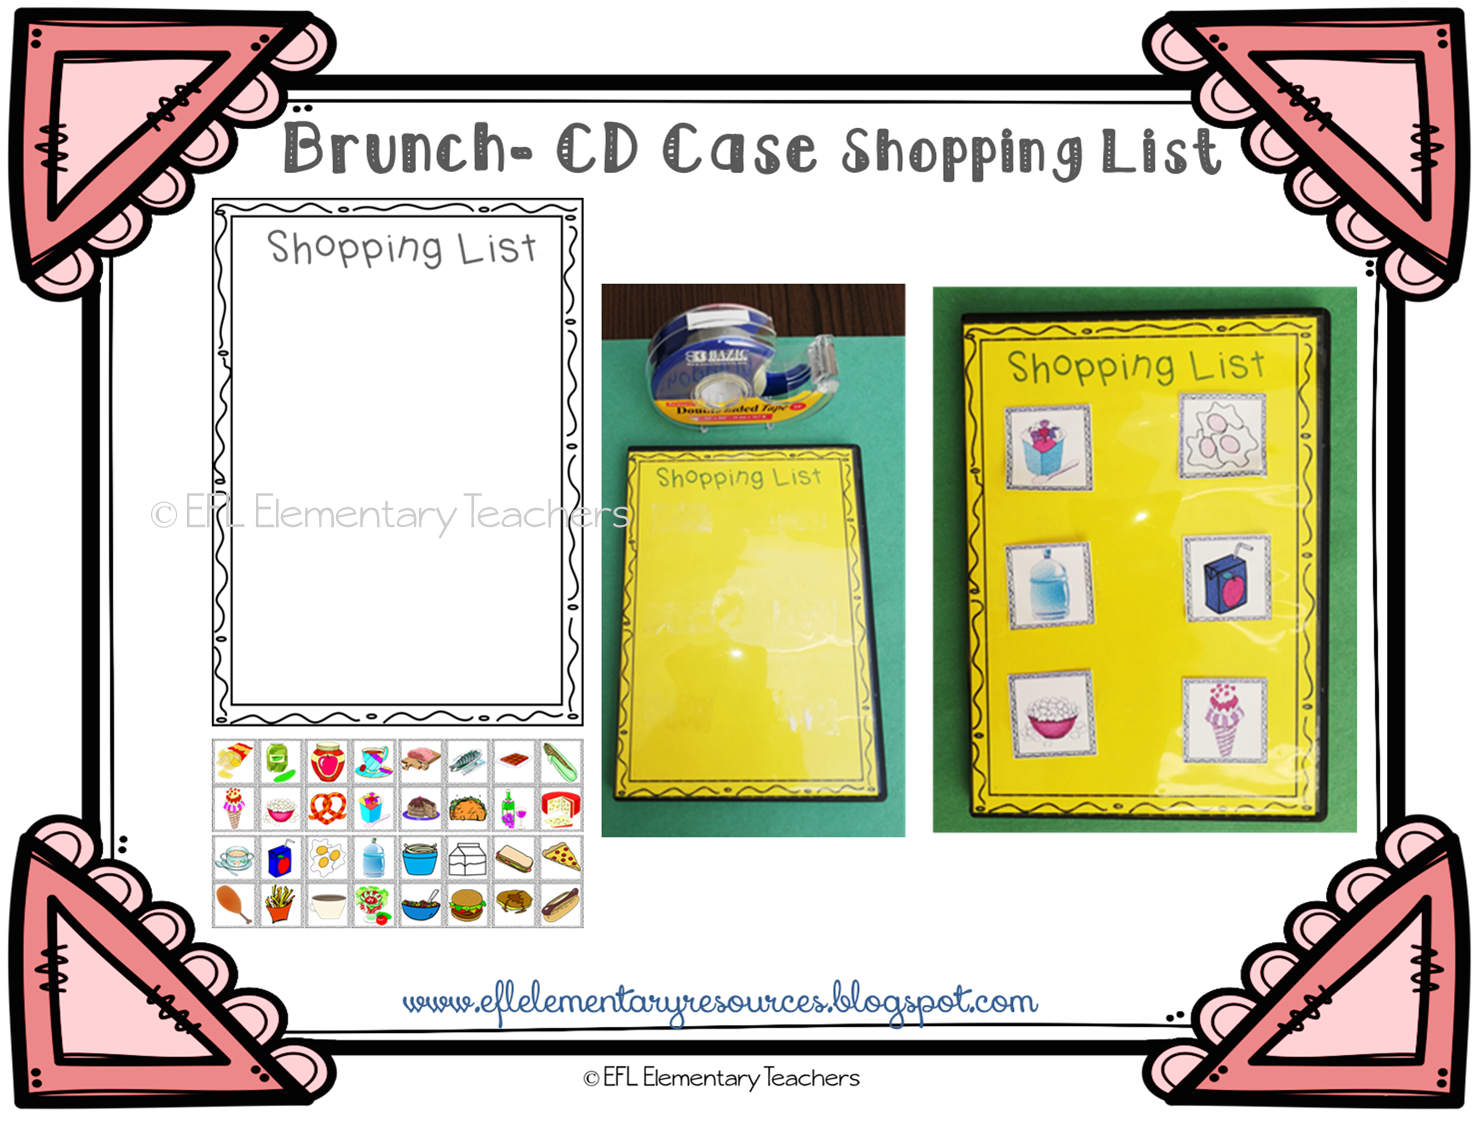 EFL Elementary Teachers: Recycle your old CD cases- Food Theme for ELL